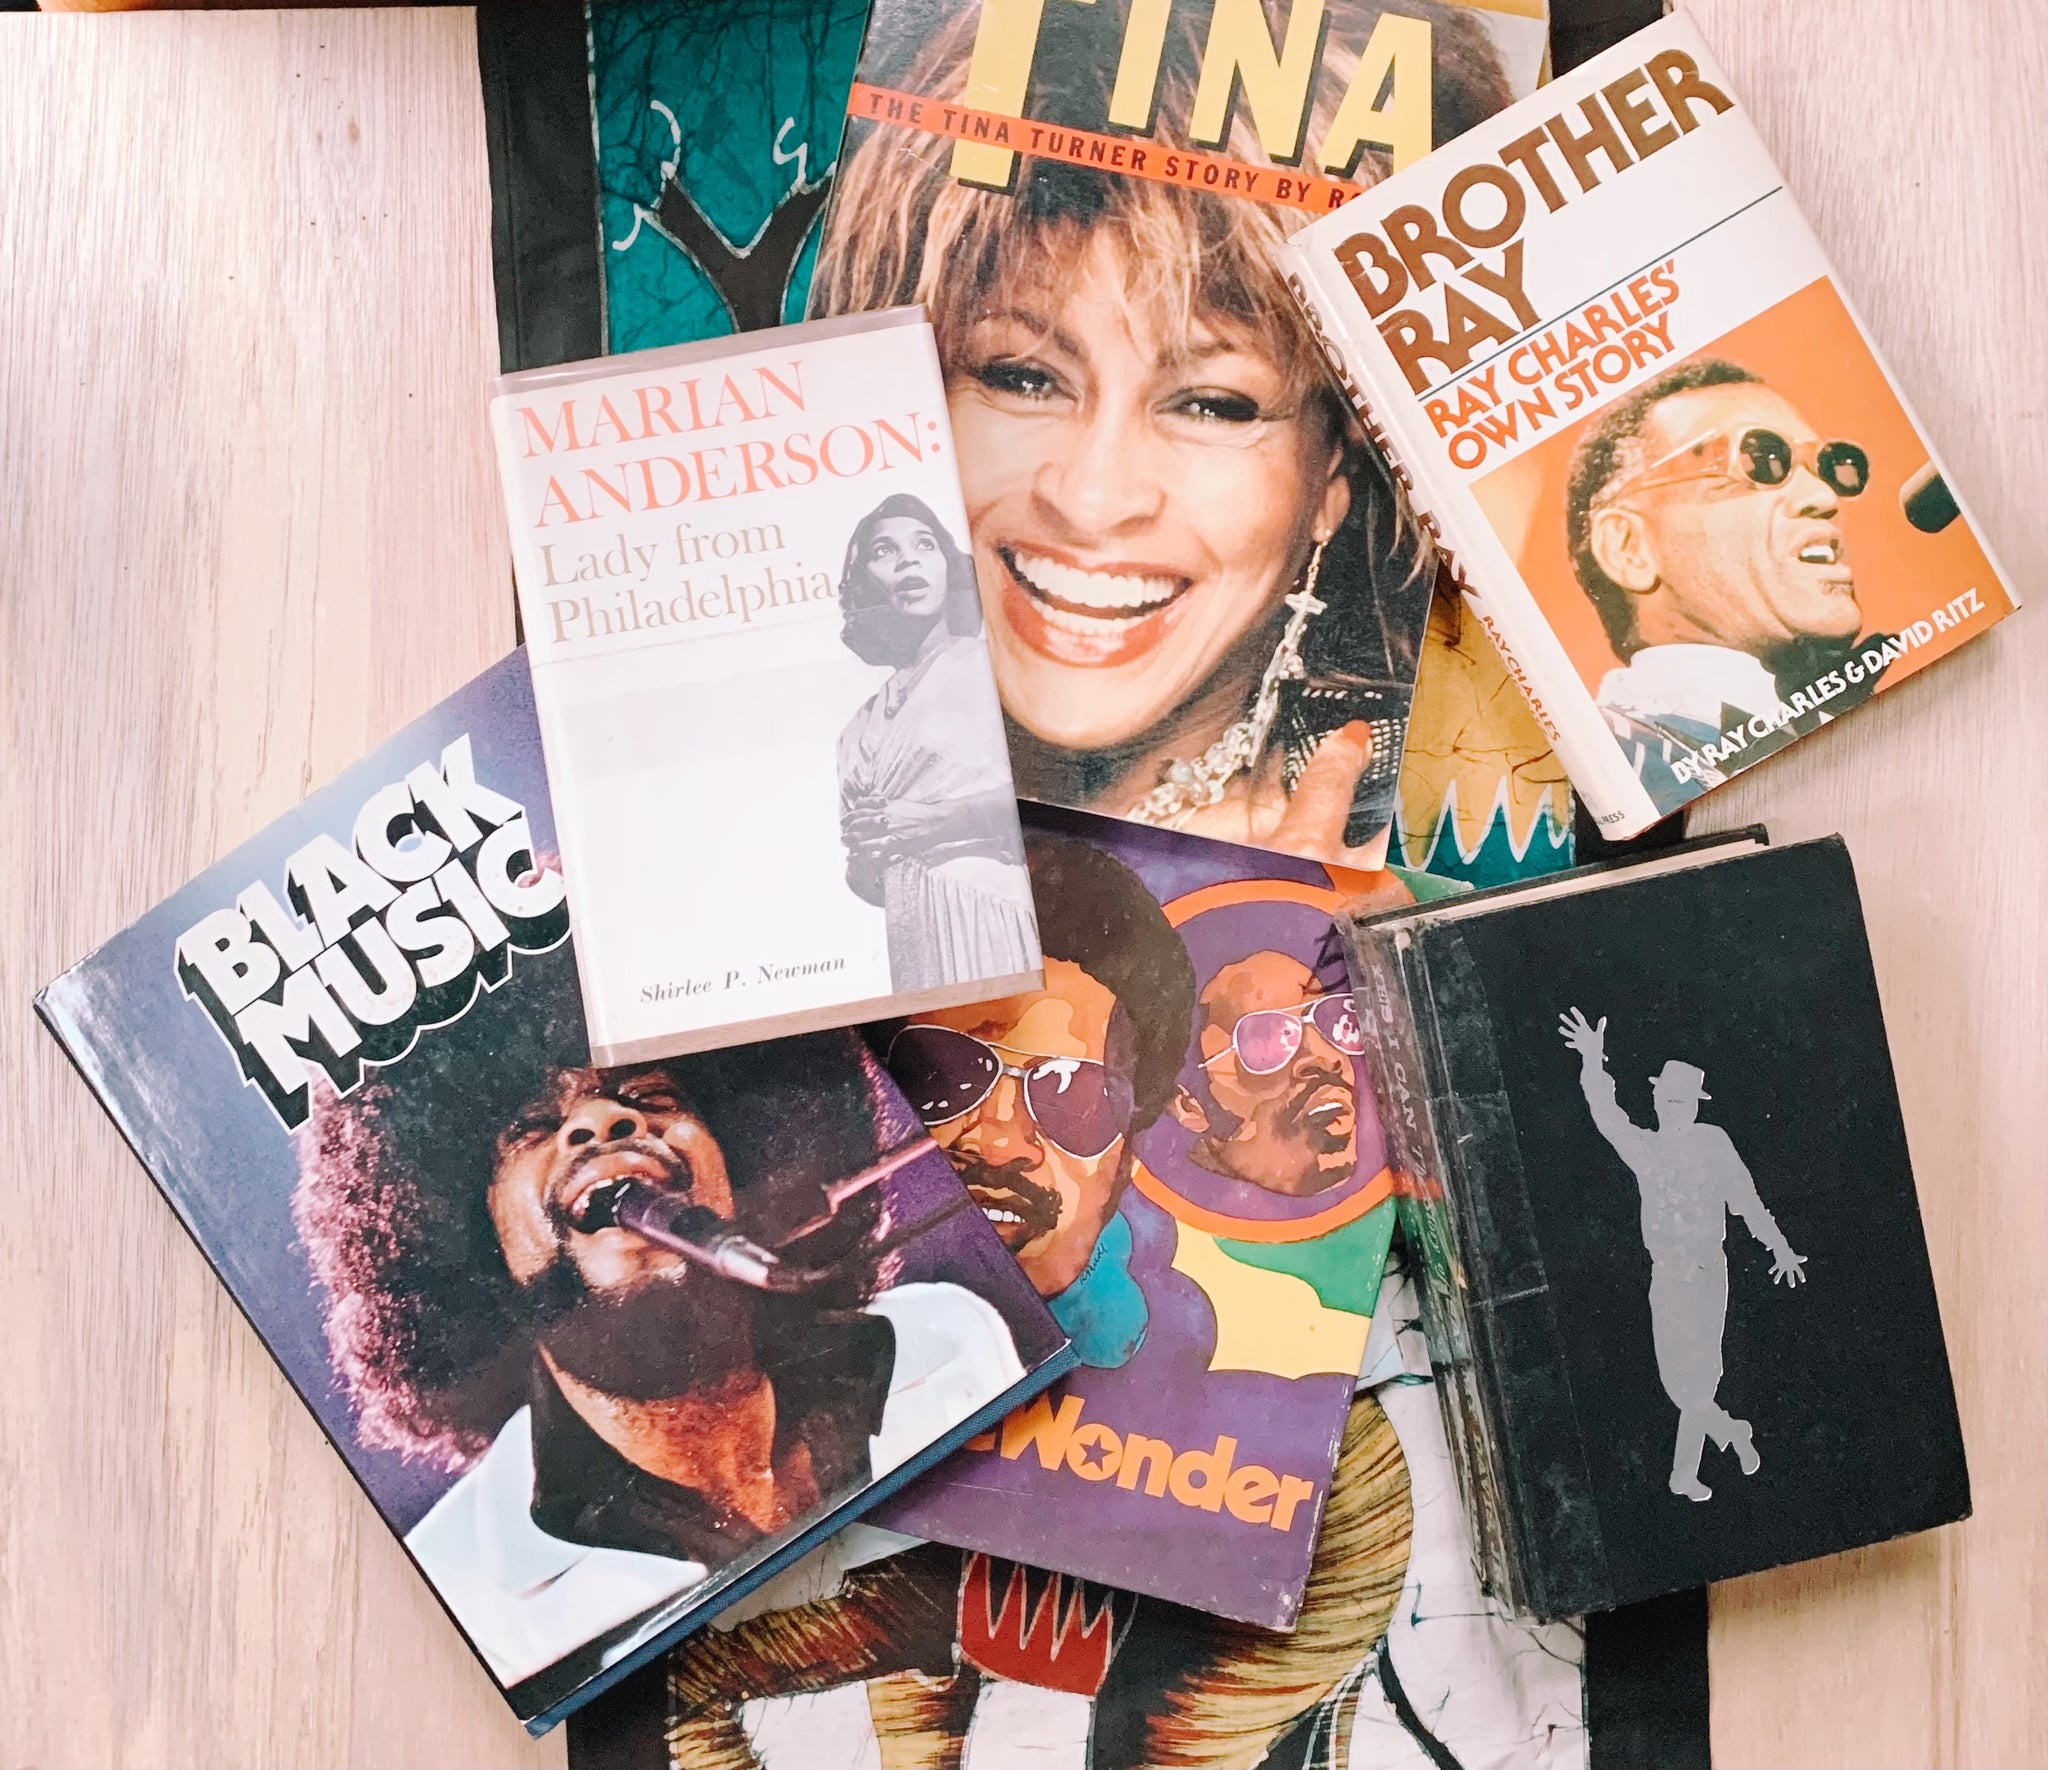 Vintage Assorted Music-Related Books // Stevie Wonder, Tina Turner, Ray Charles & more (Please Select)